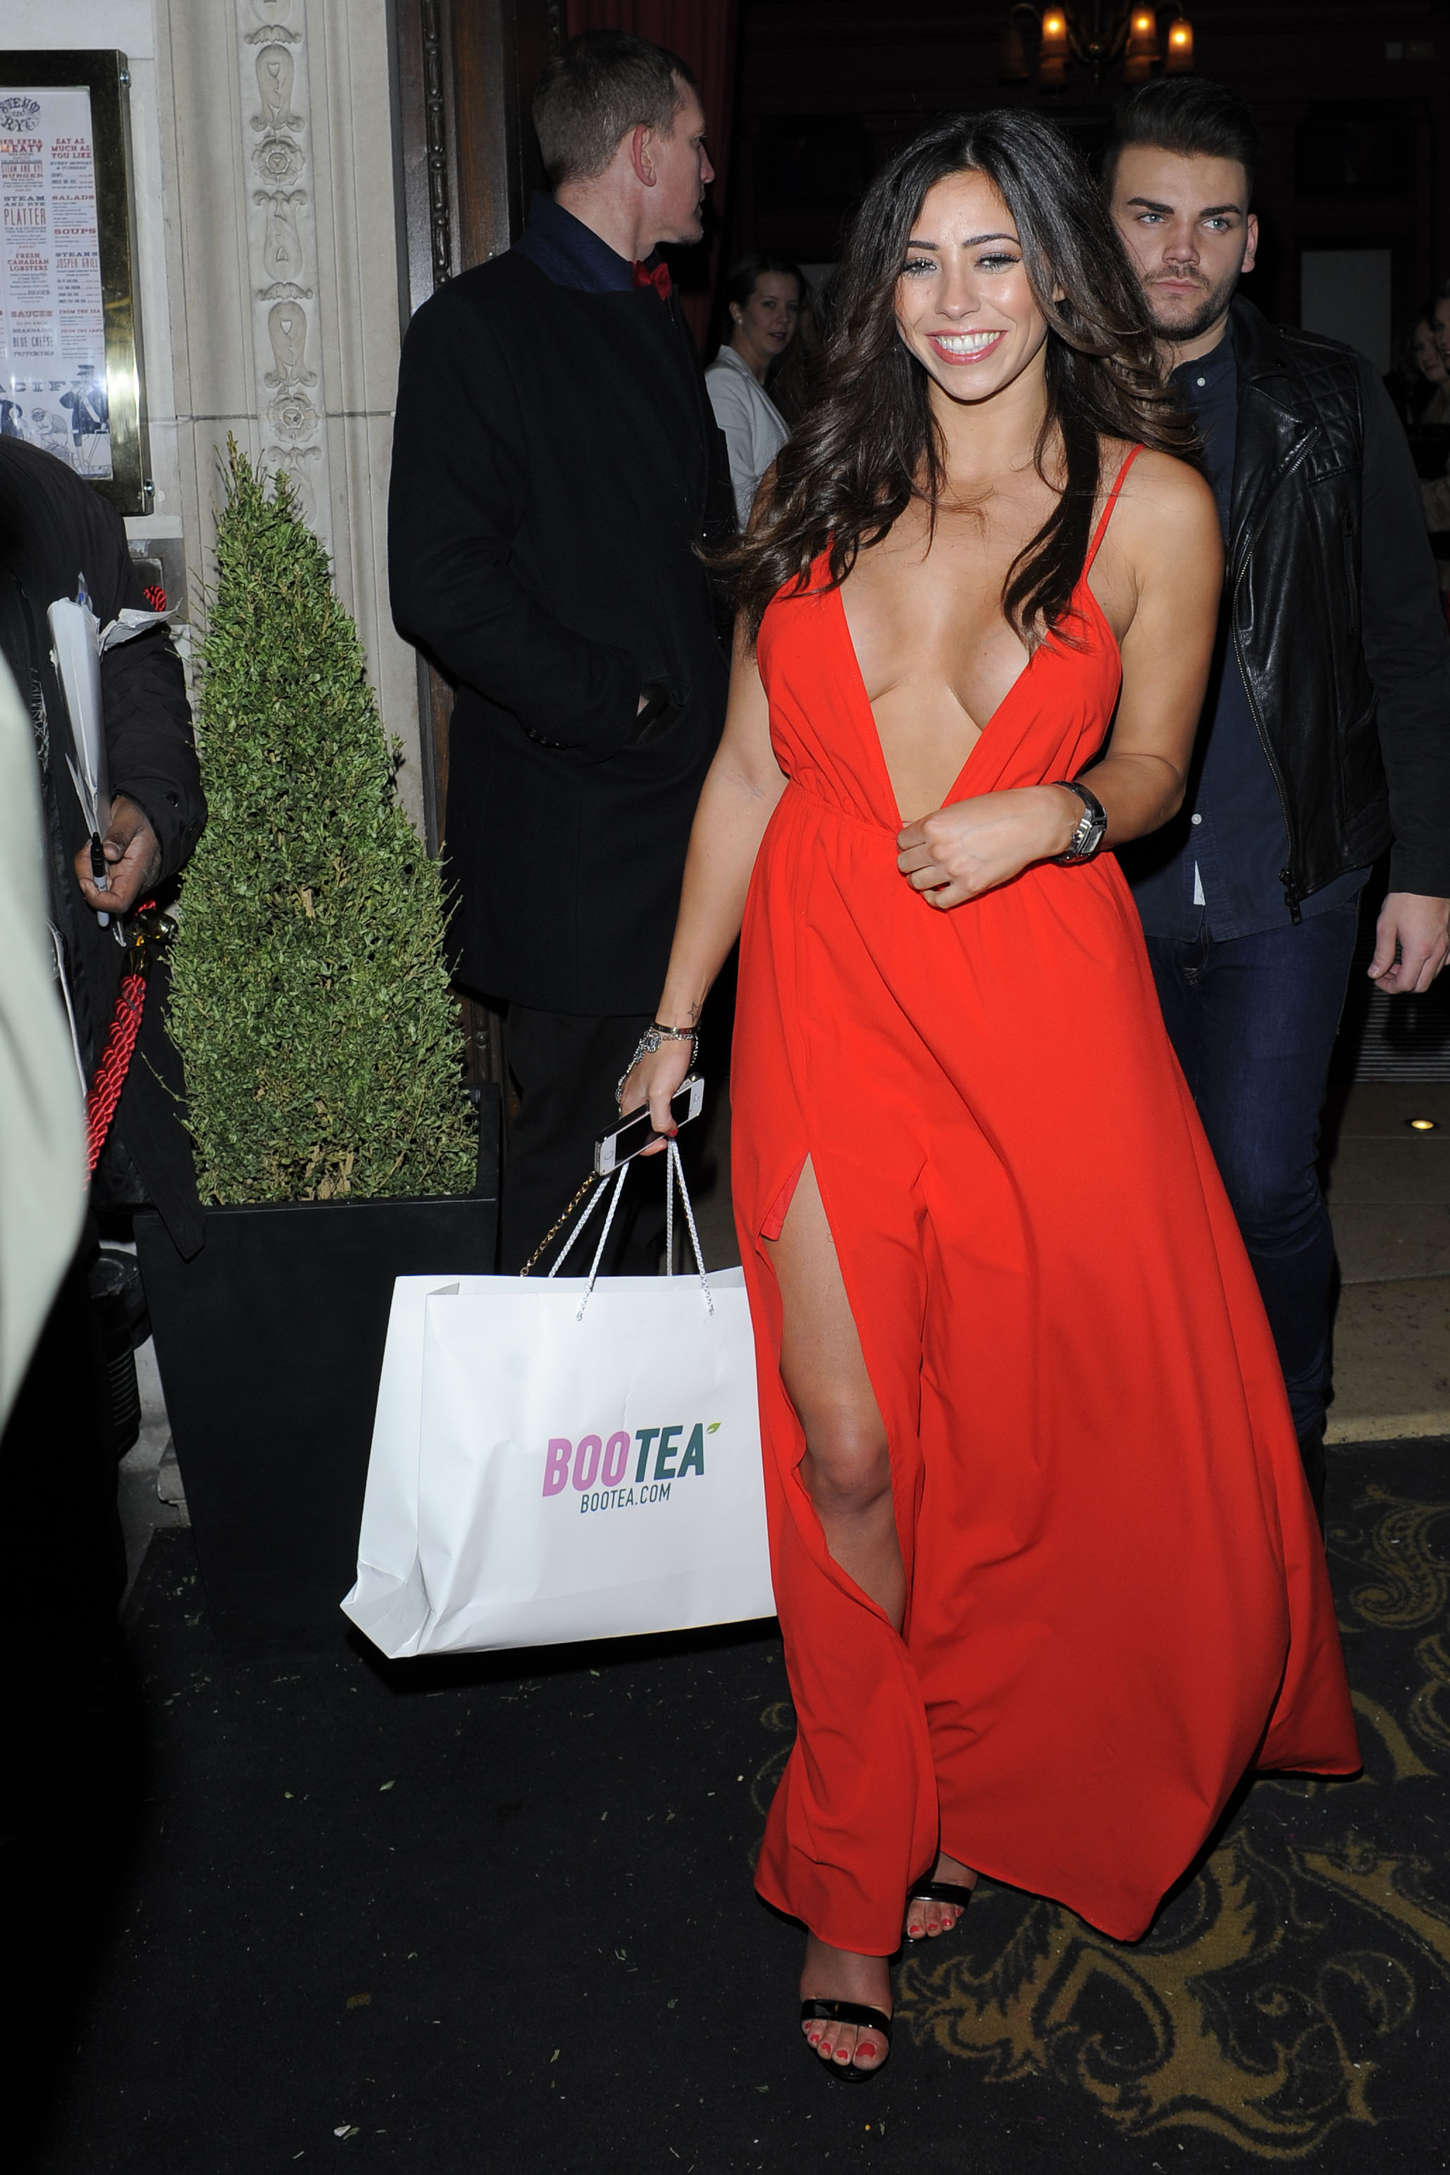 Pascal Craymer The Sun Bizarre Party in London